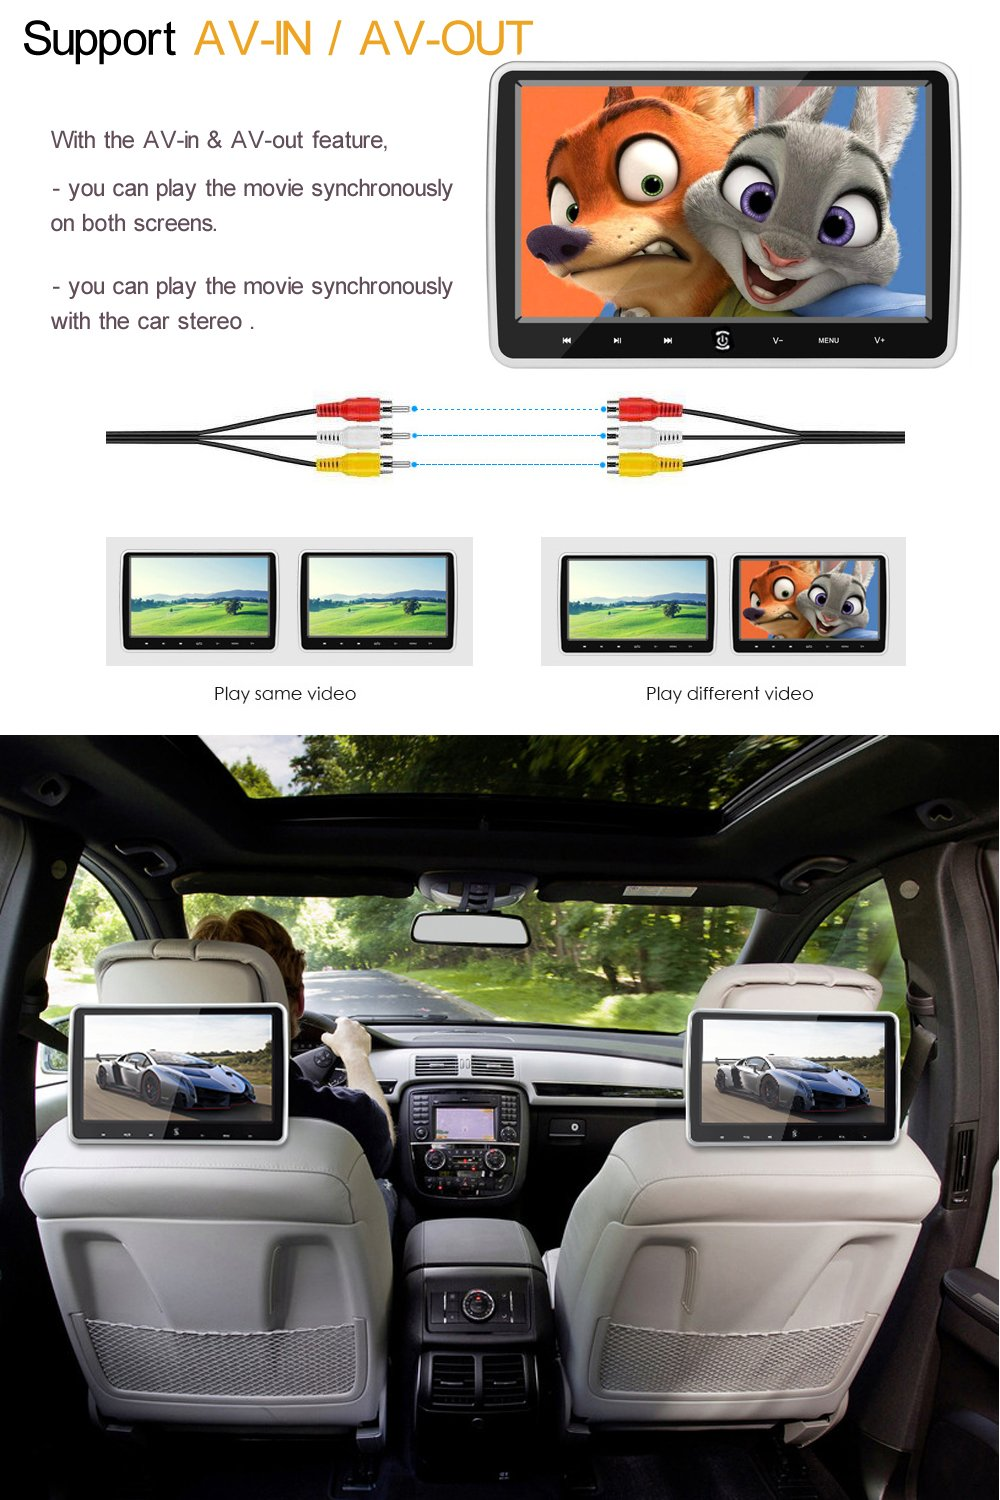 Amazon.com: Alondy 10.1 Inch HD 1024 x 600 HDMI USB SD IR/FM Ultra Thin Digital LCD Screen Car DVD Player Headrest Monitor: Car Electronics